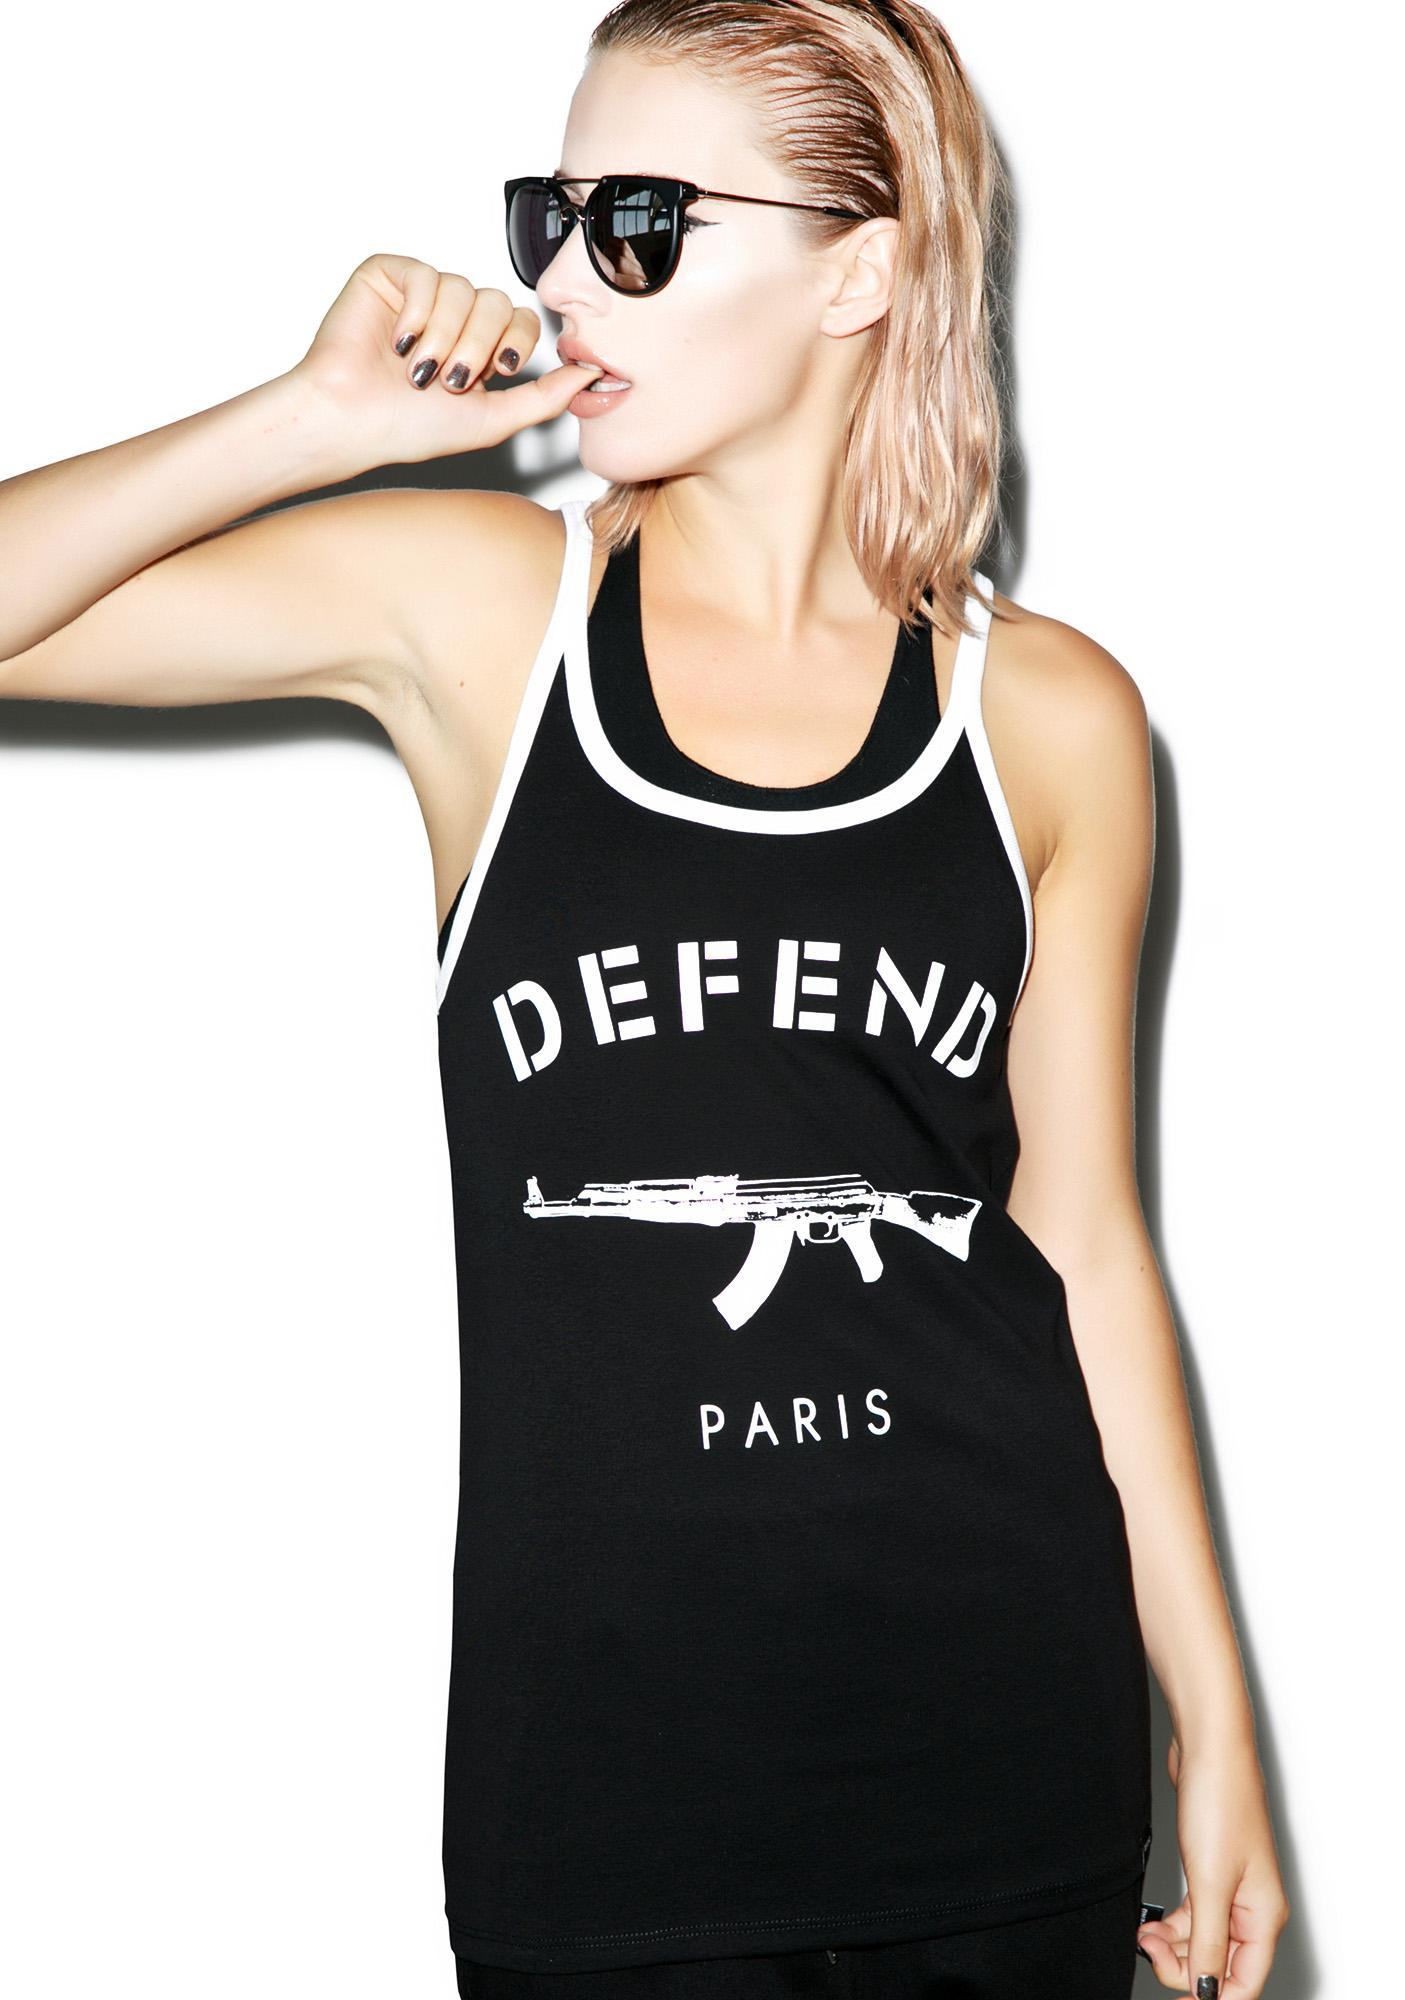 Defend Paris Paris Long Tee